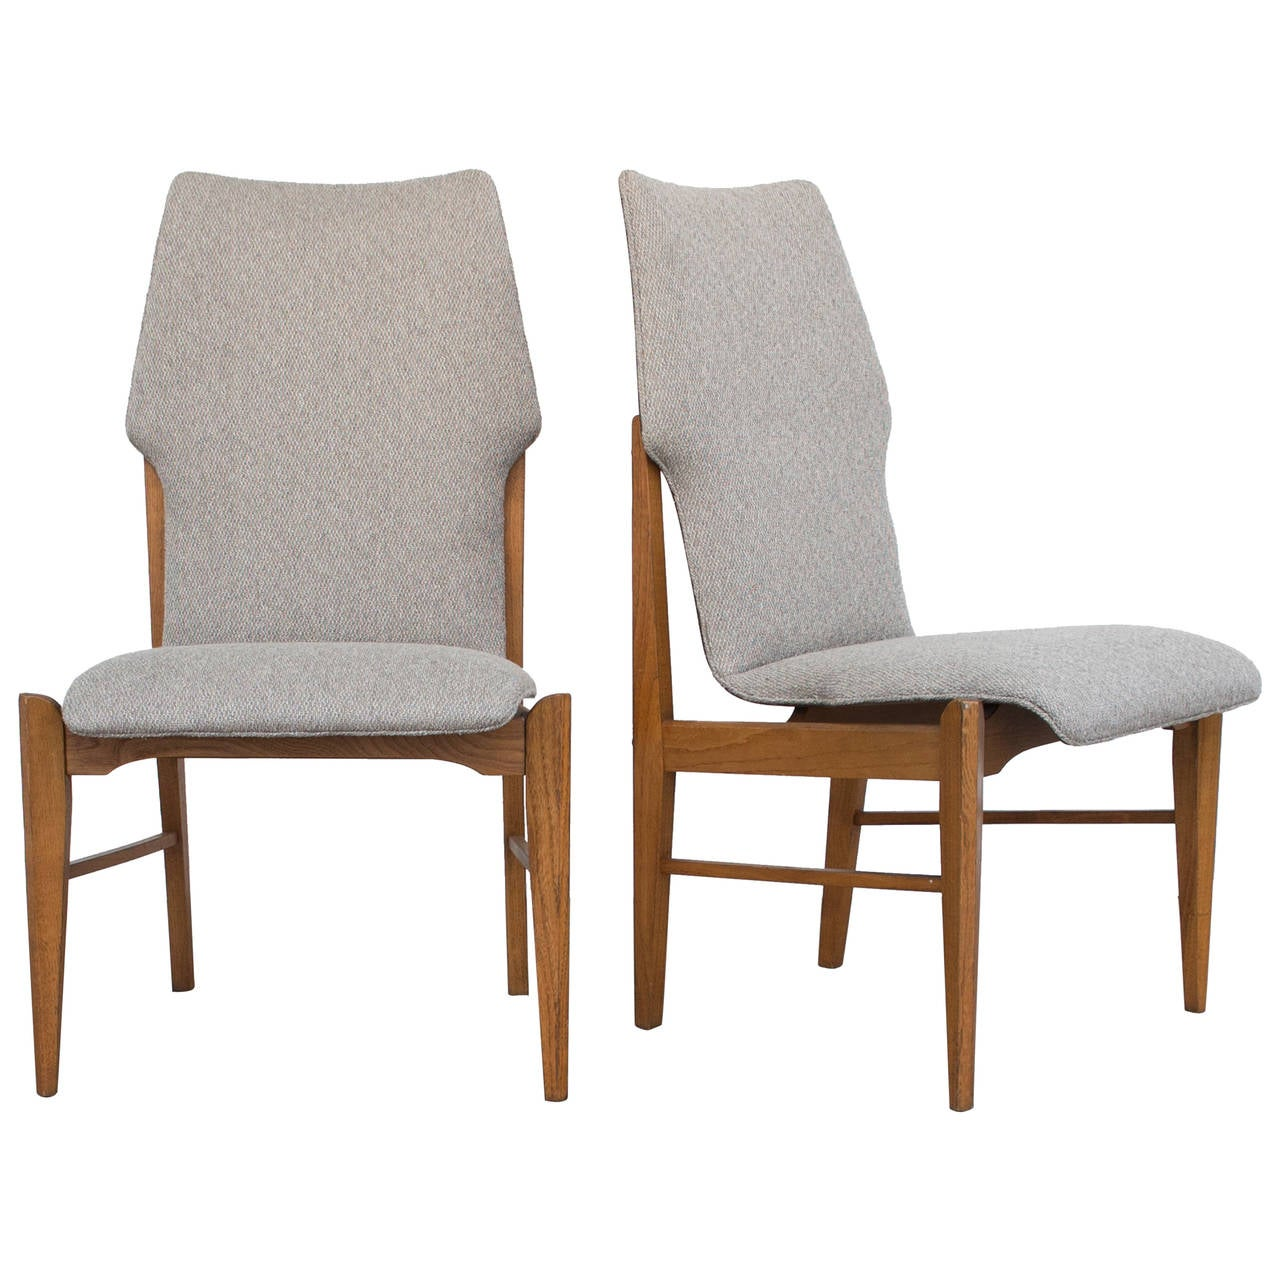 this four kodawood danish modern dining chairs is no longer available